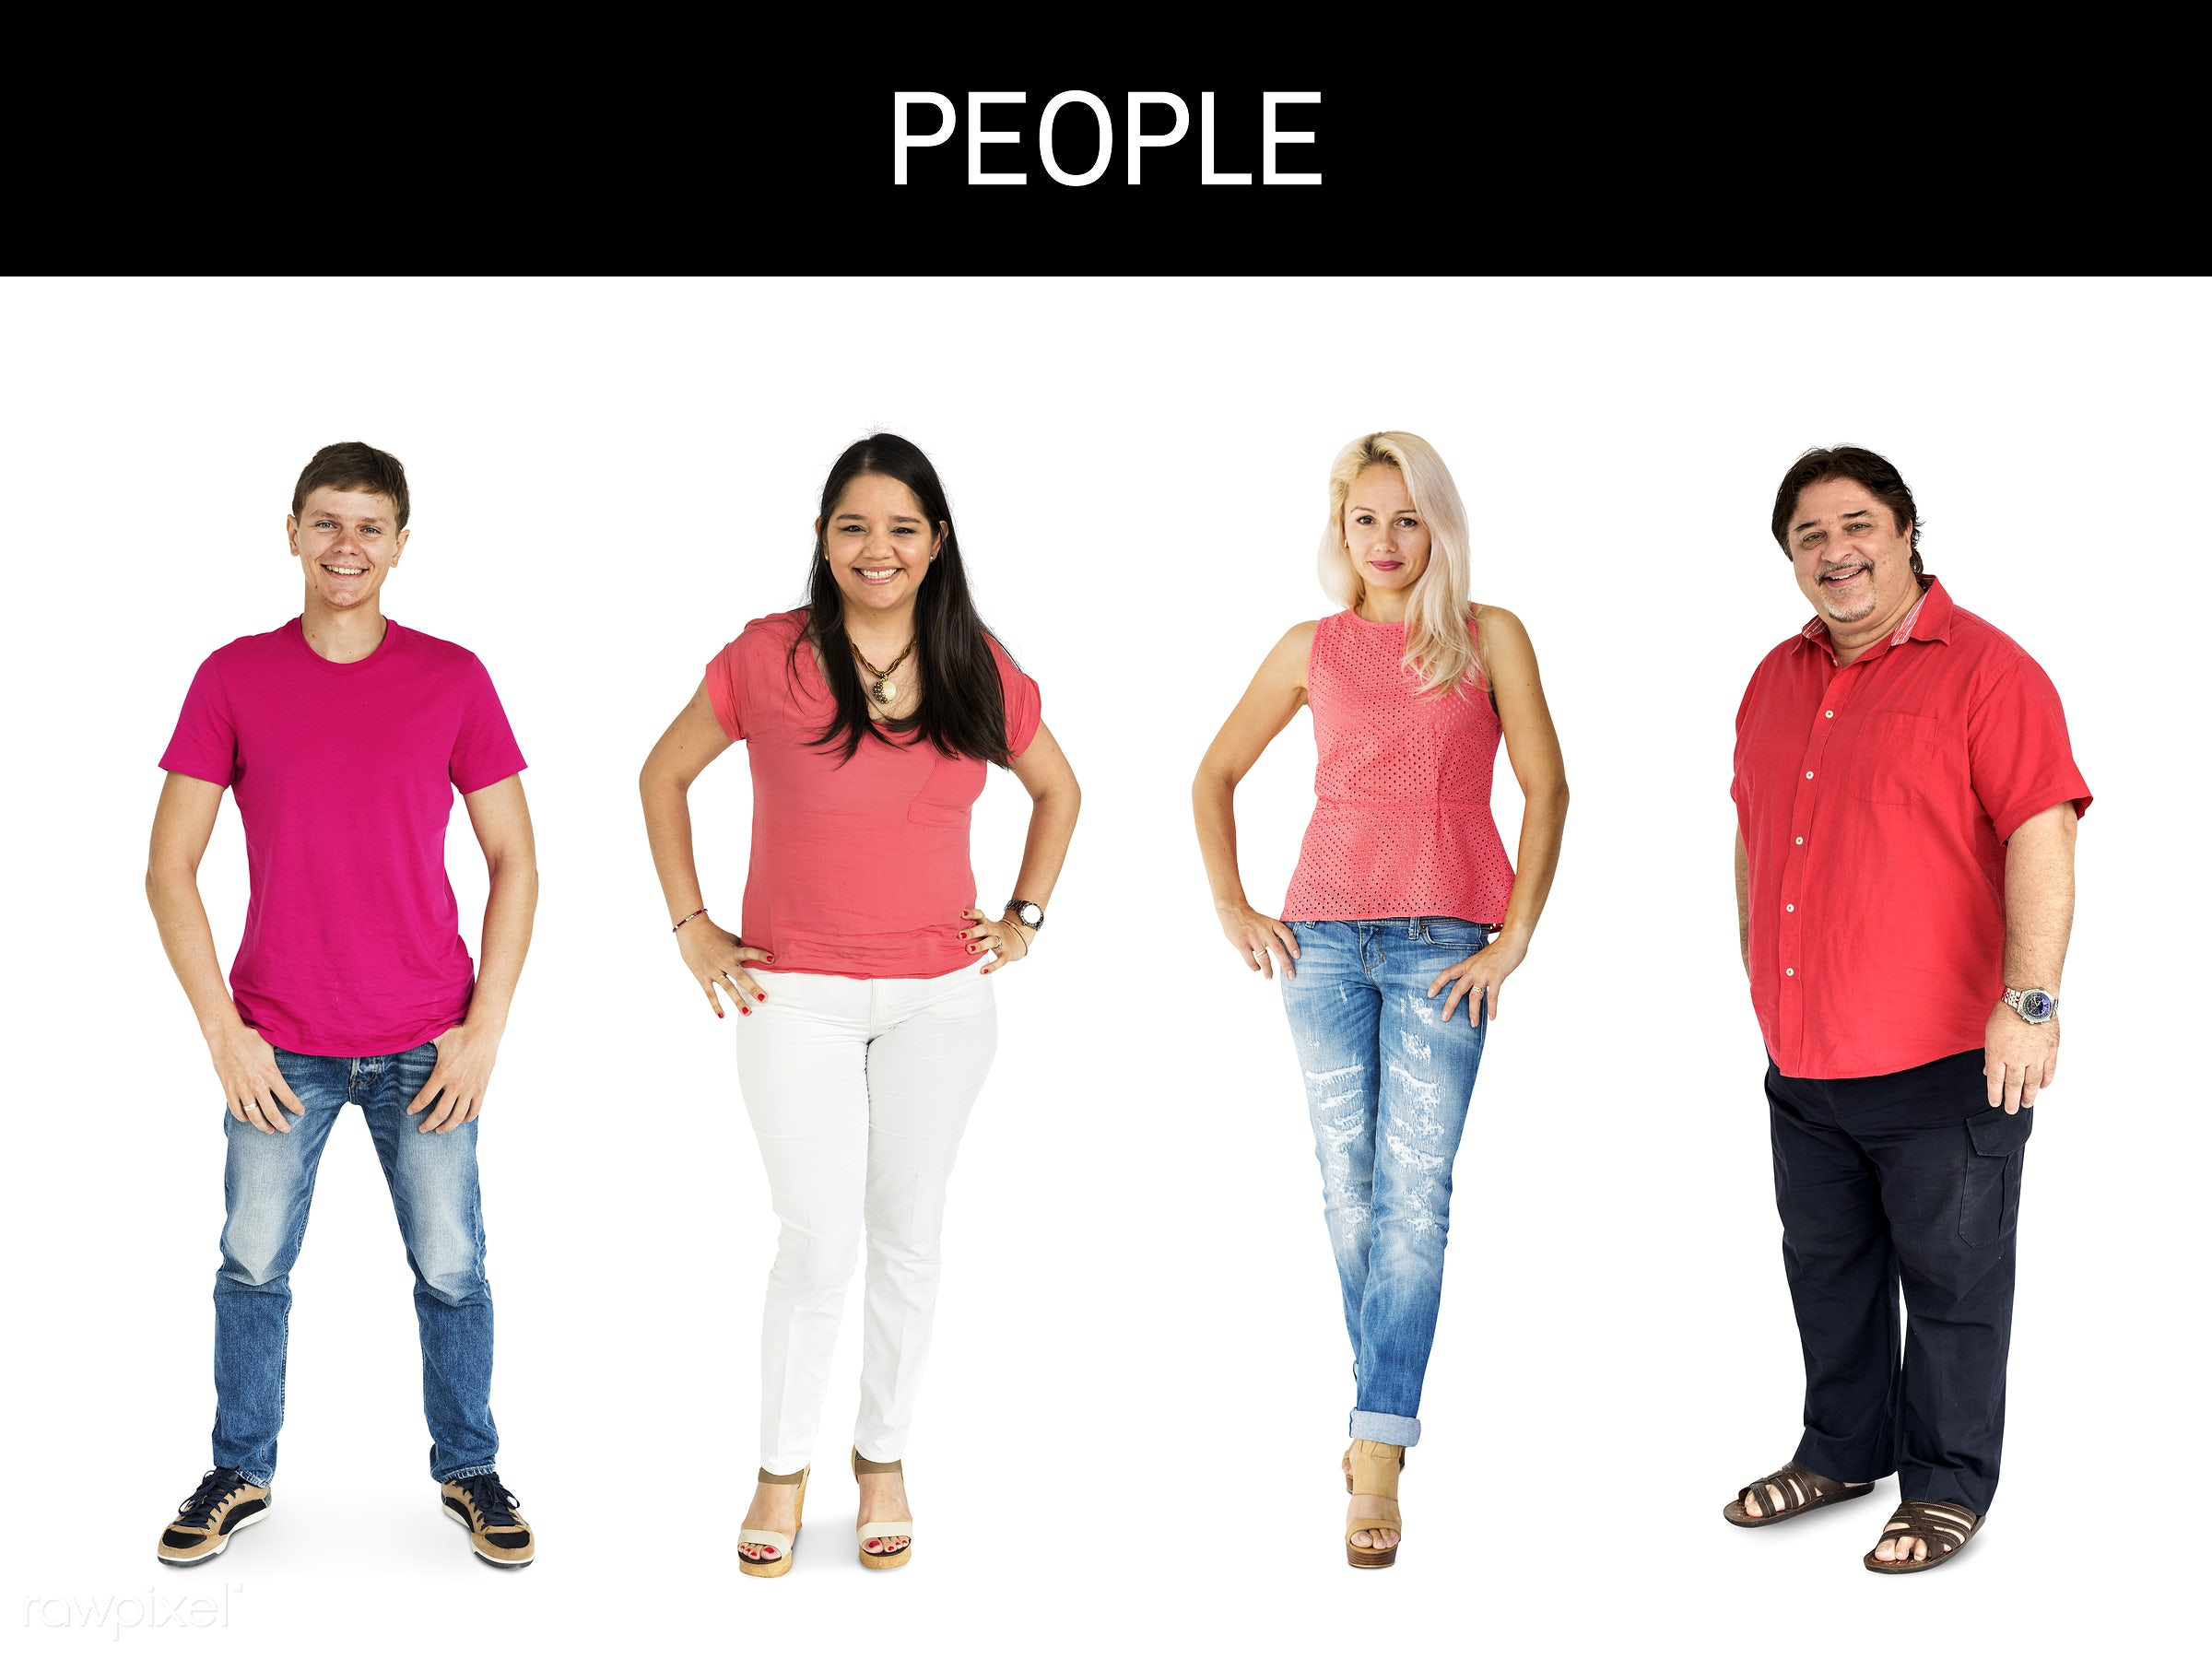 gentlemen, studio, person, diverse, set, red shirt, people, attraction, together, caucasian, asian, life, woman, attractive...